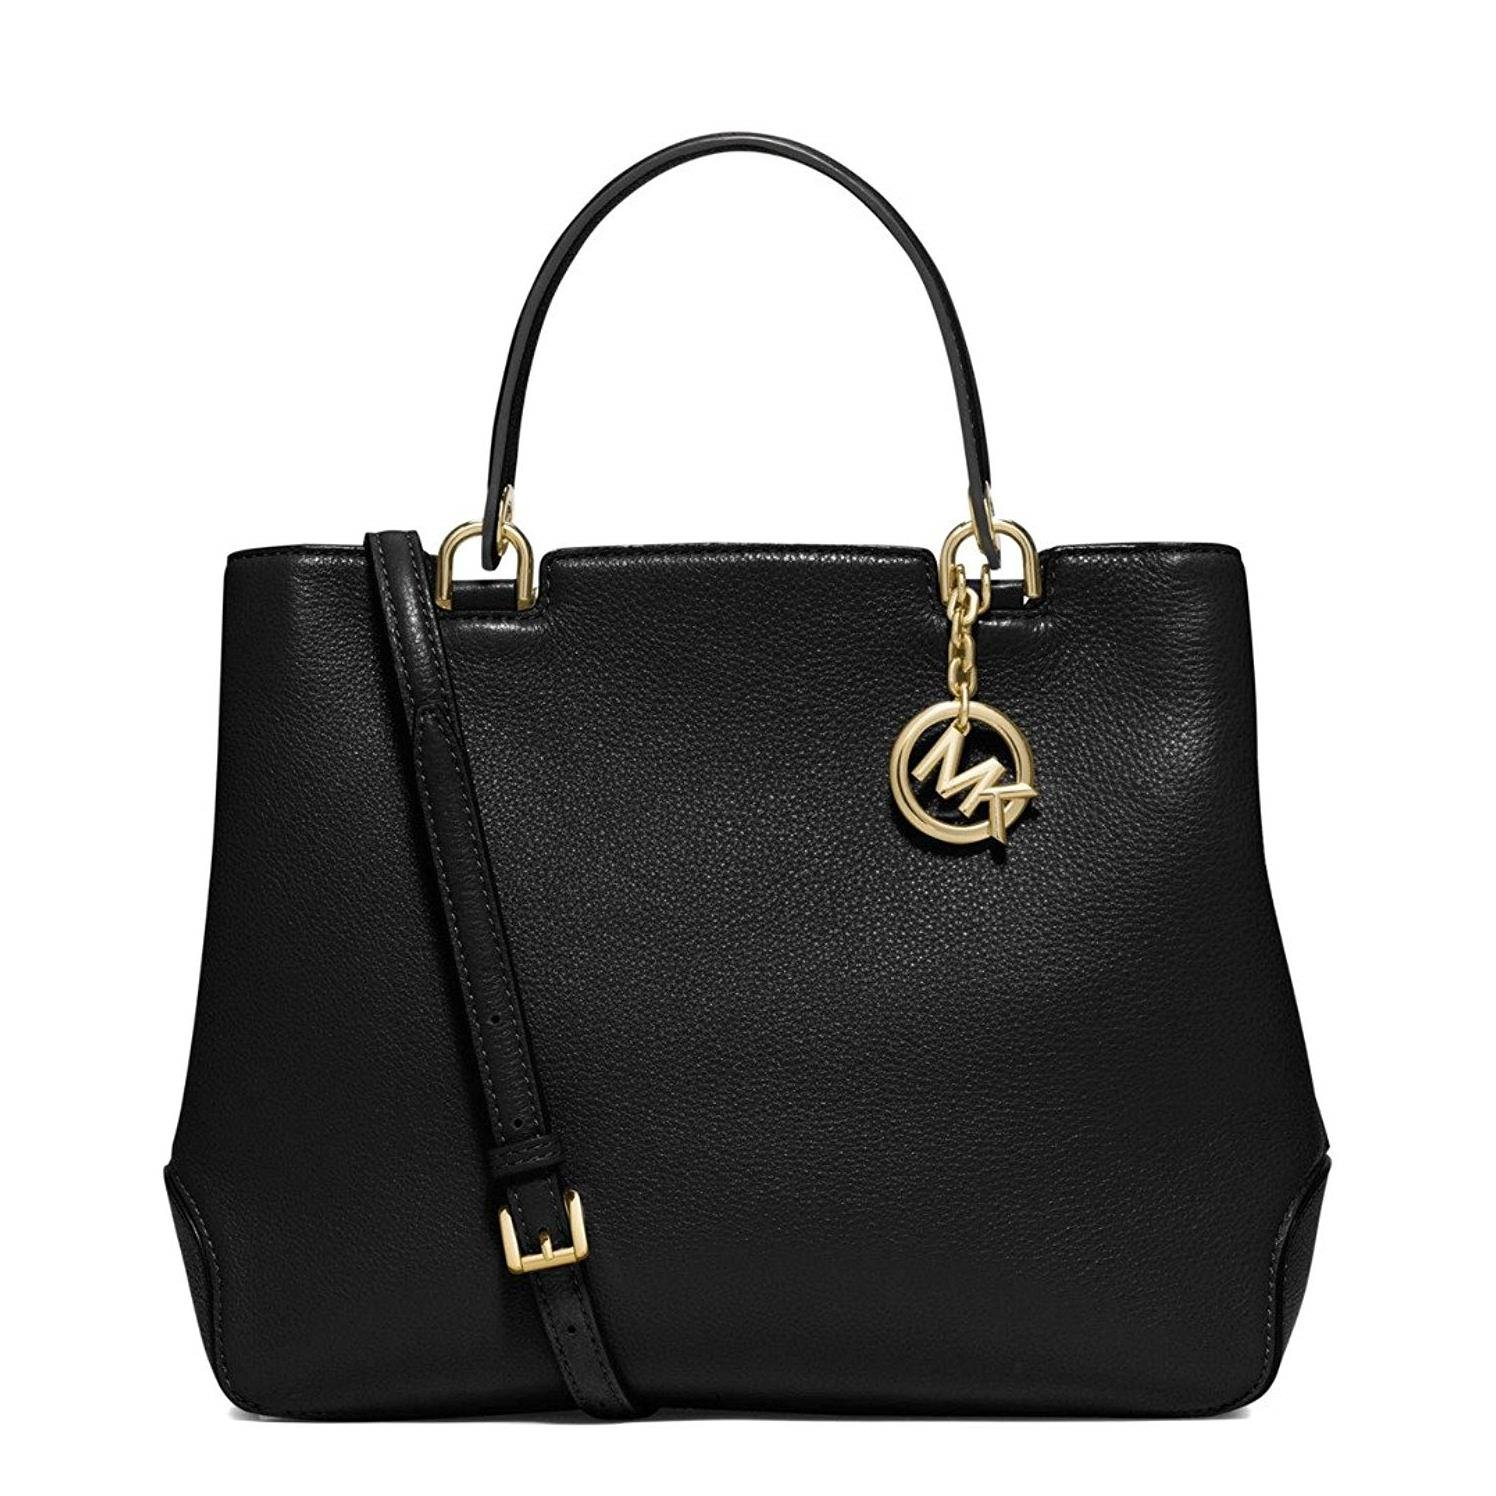 15c580ae6ddc Amazon.com: Michael Kors Women's Anabelle Leather Top Zip Tote, Black,  Large: Shoes